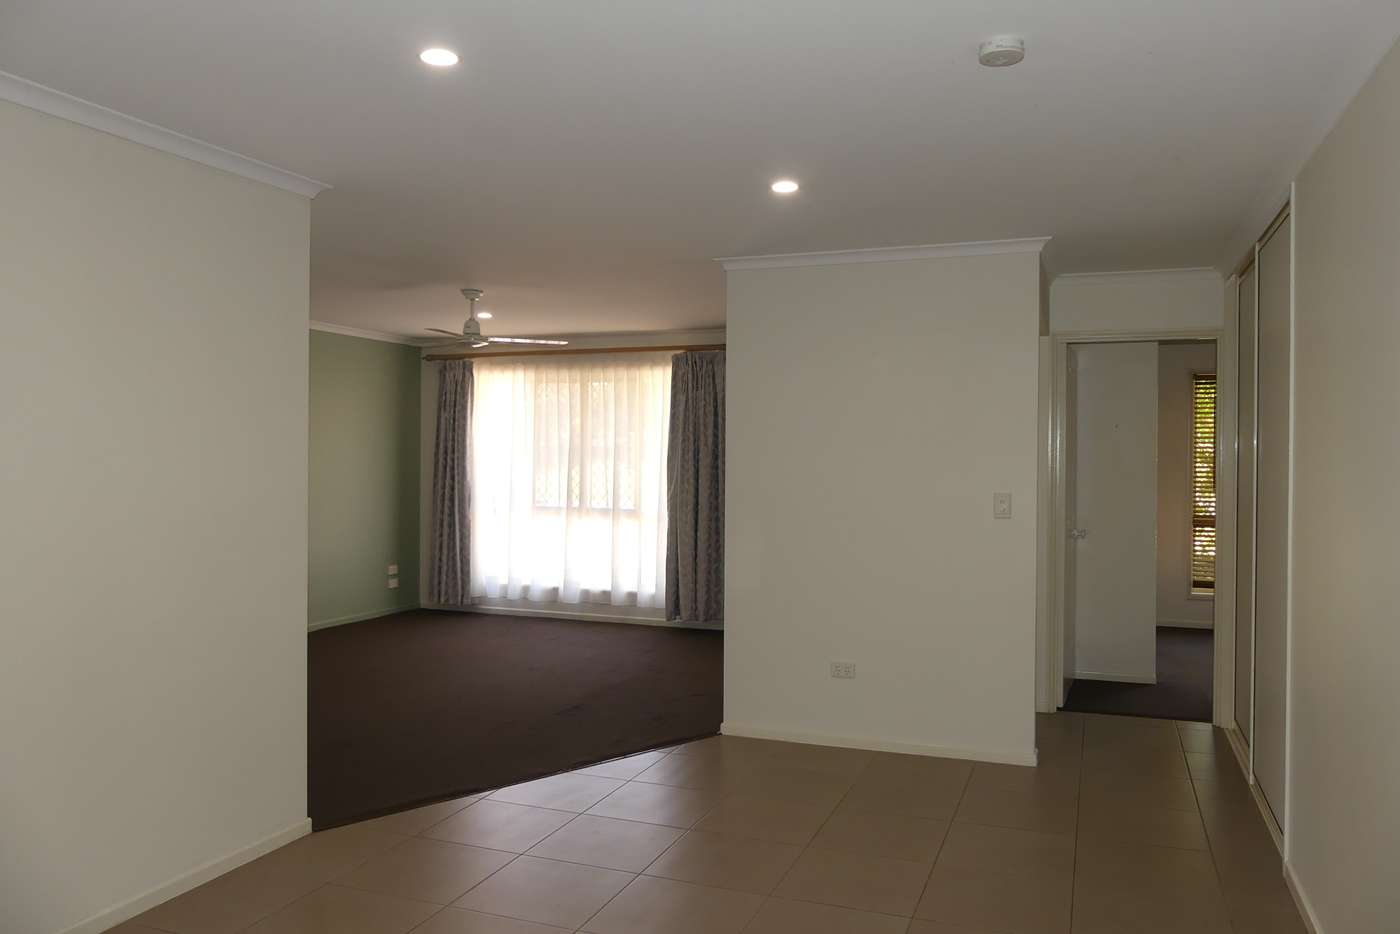 Sixth view of Homely house listing, 6 Cocas Dr, Avoca QLD 4670